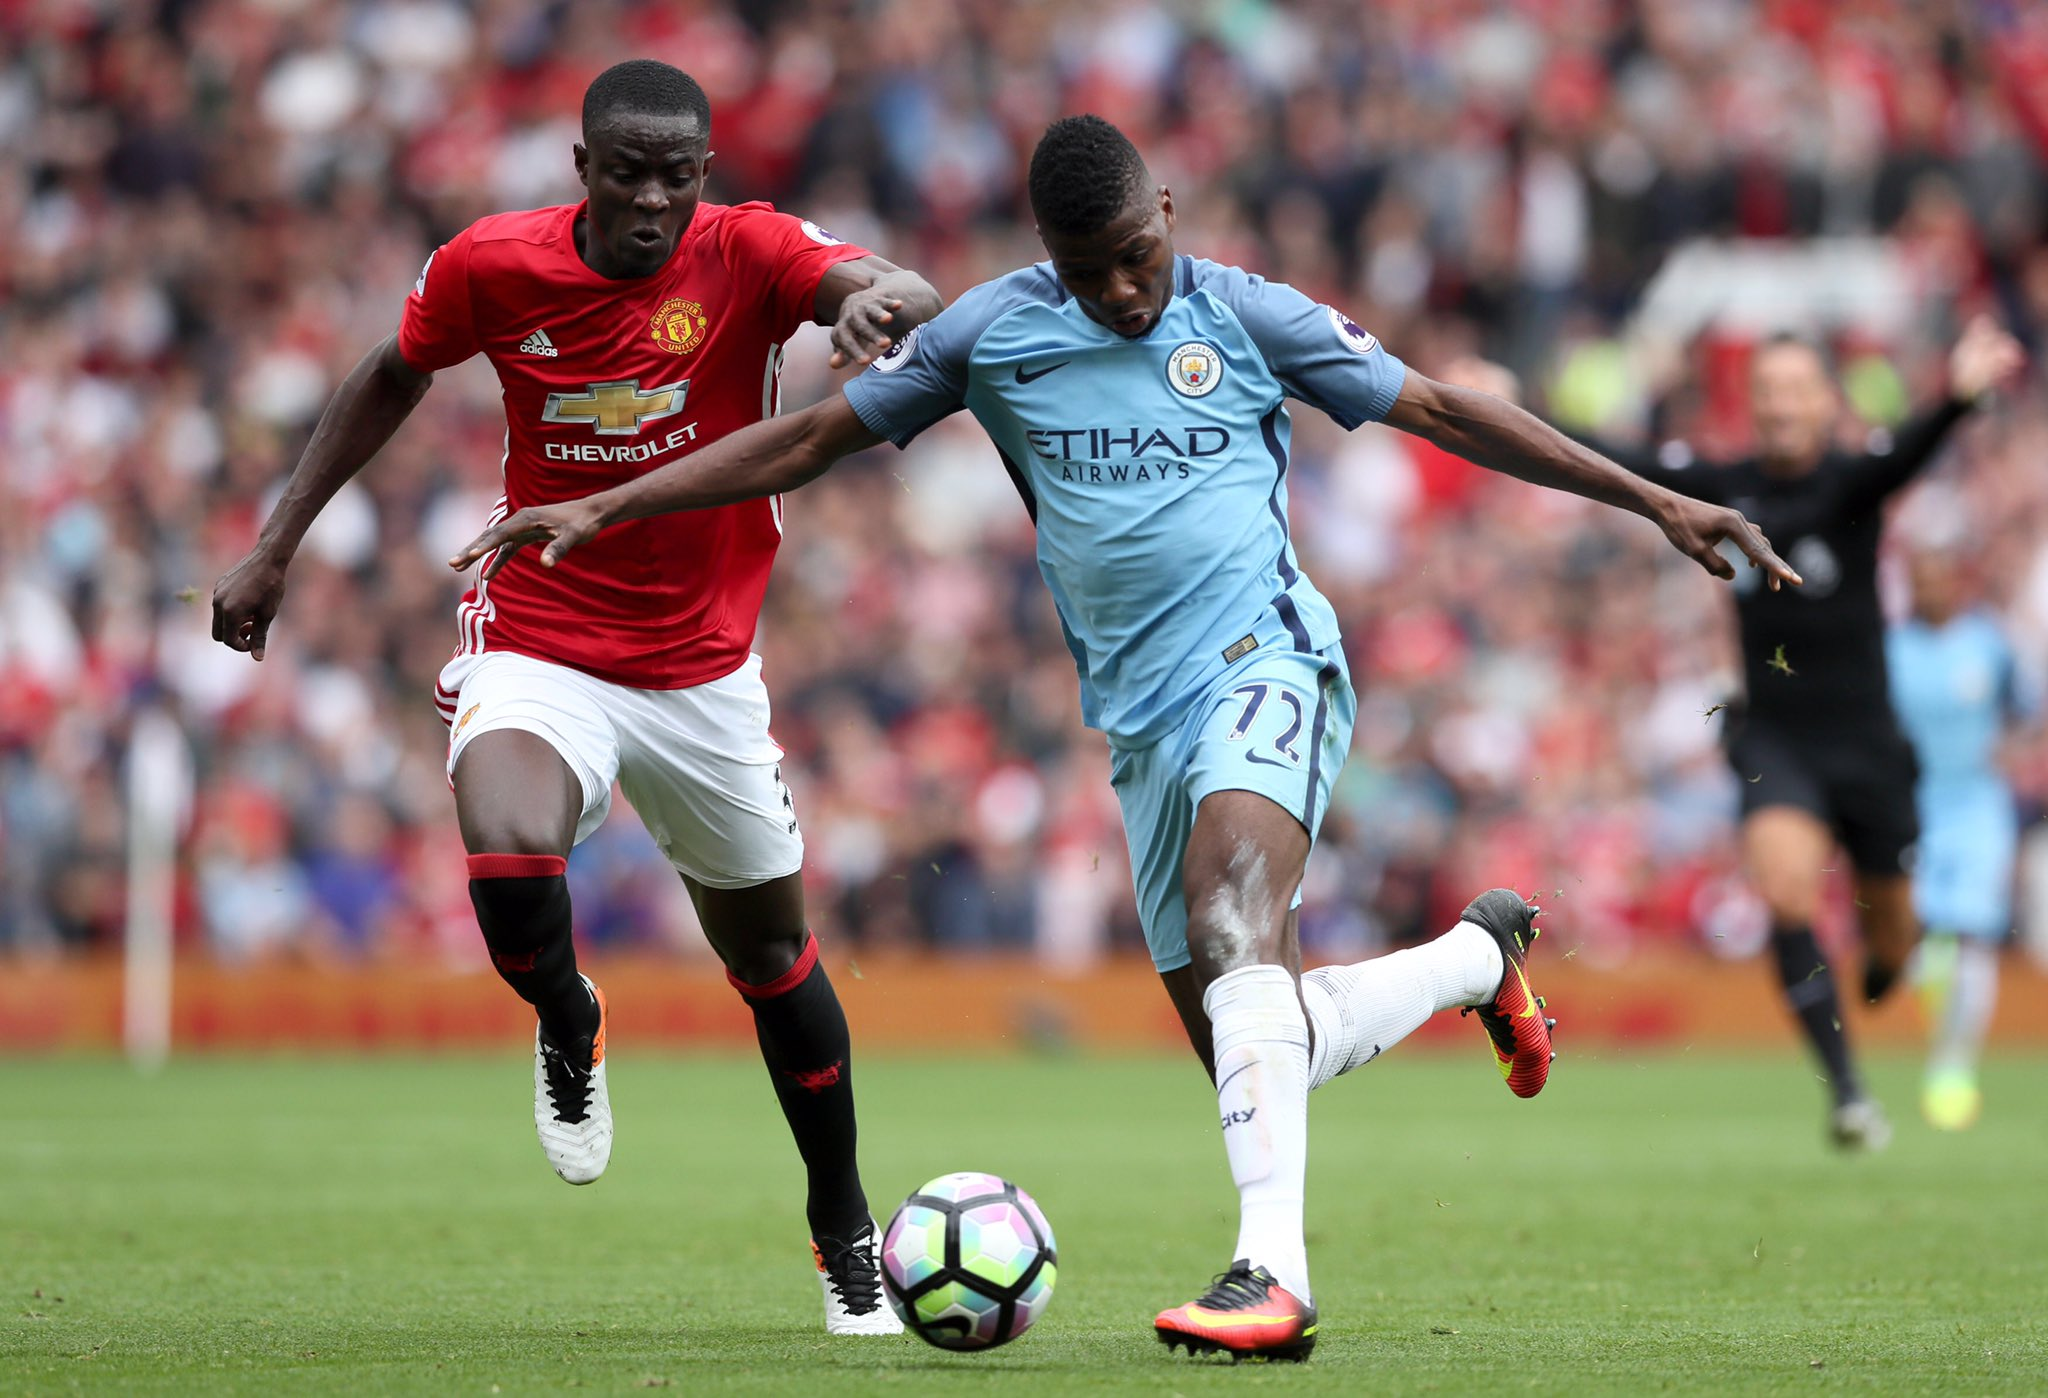 EFL Cup: Man United To Host City, Liverpool To Face Spurs